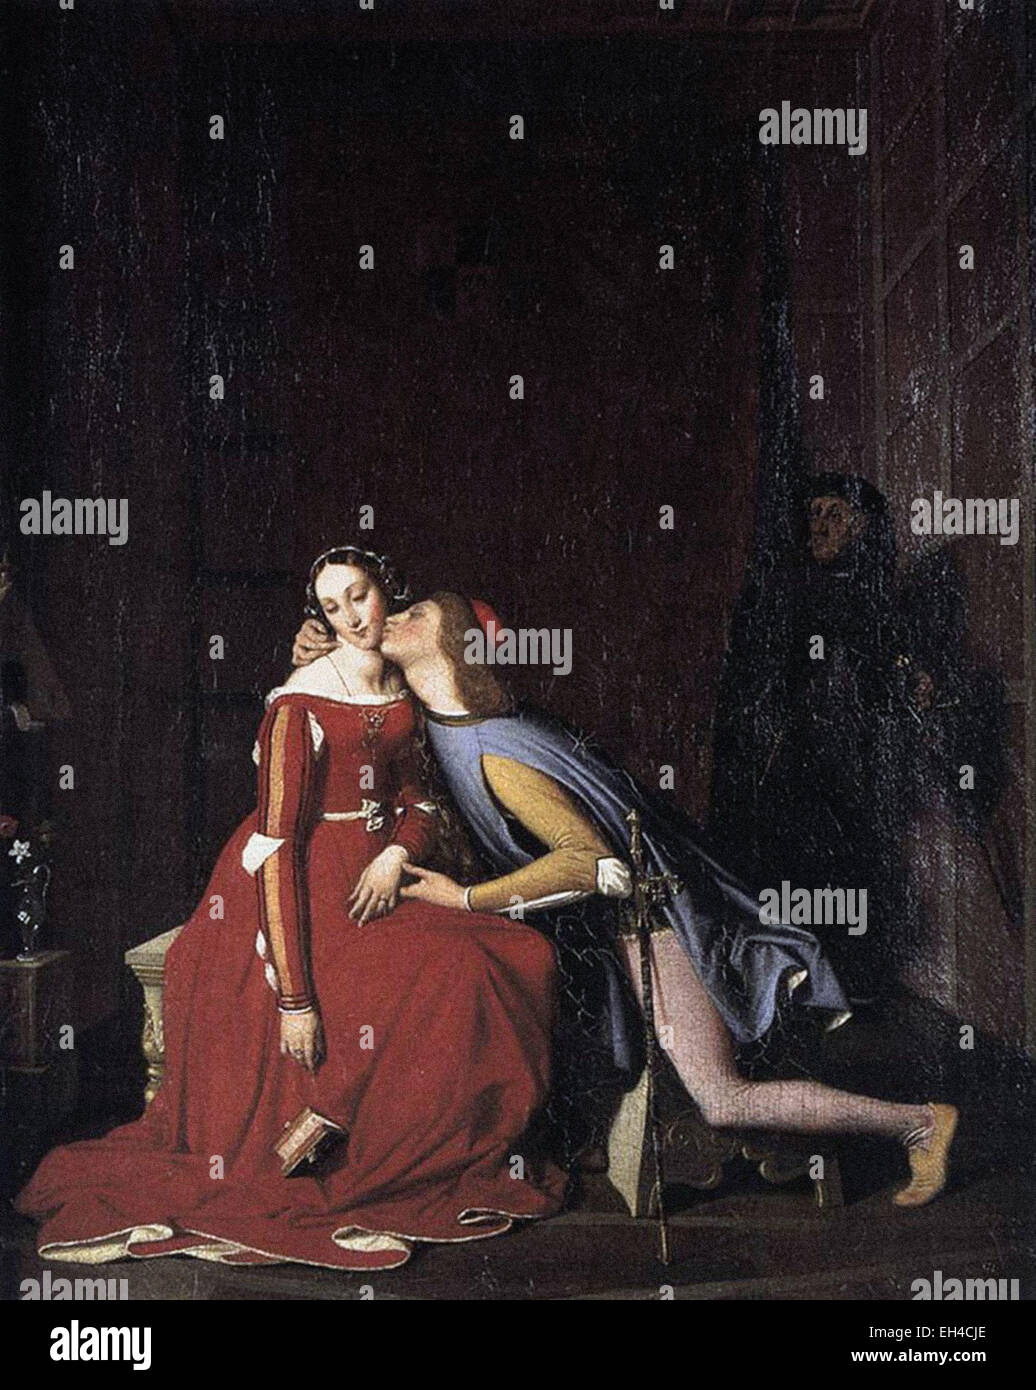 Jean-Auguste-Dominique Ingres  Paolo and Francesca - Stock Image